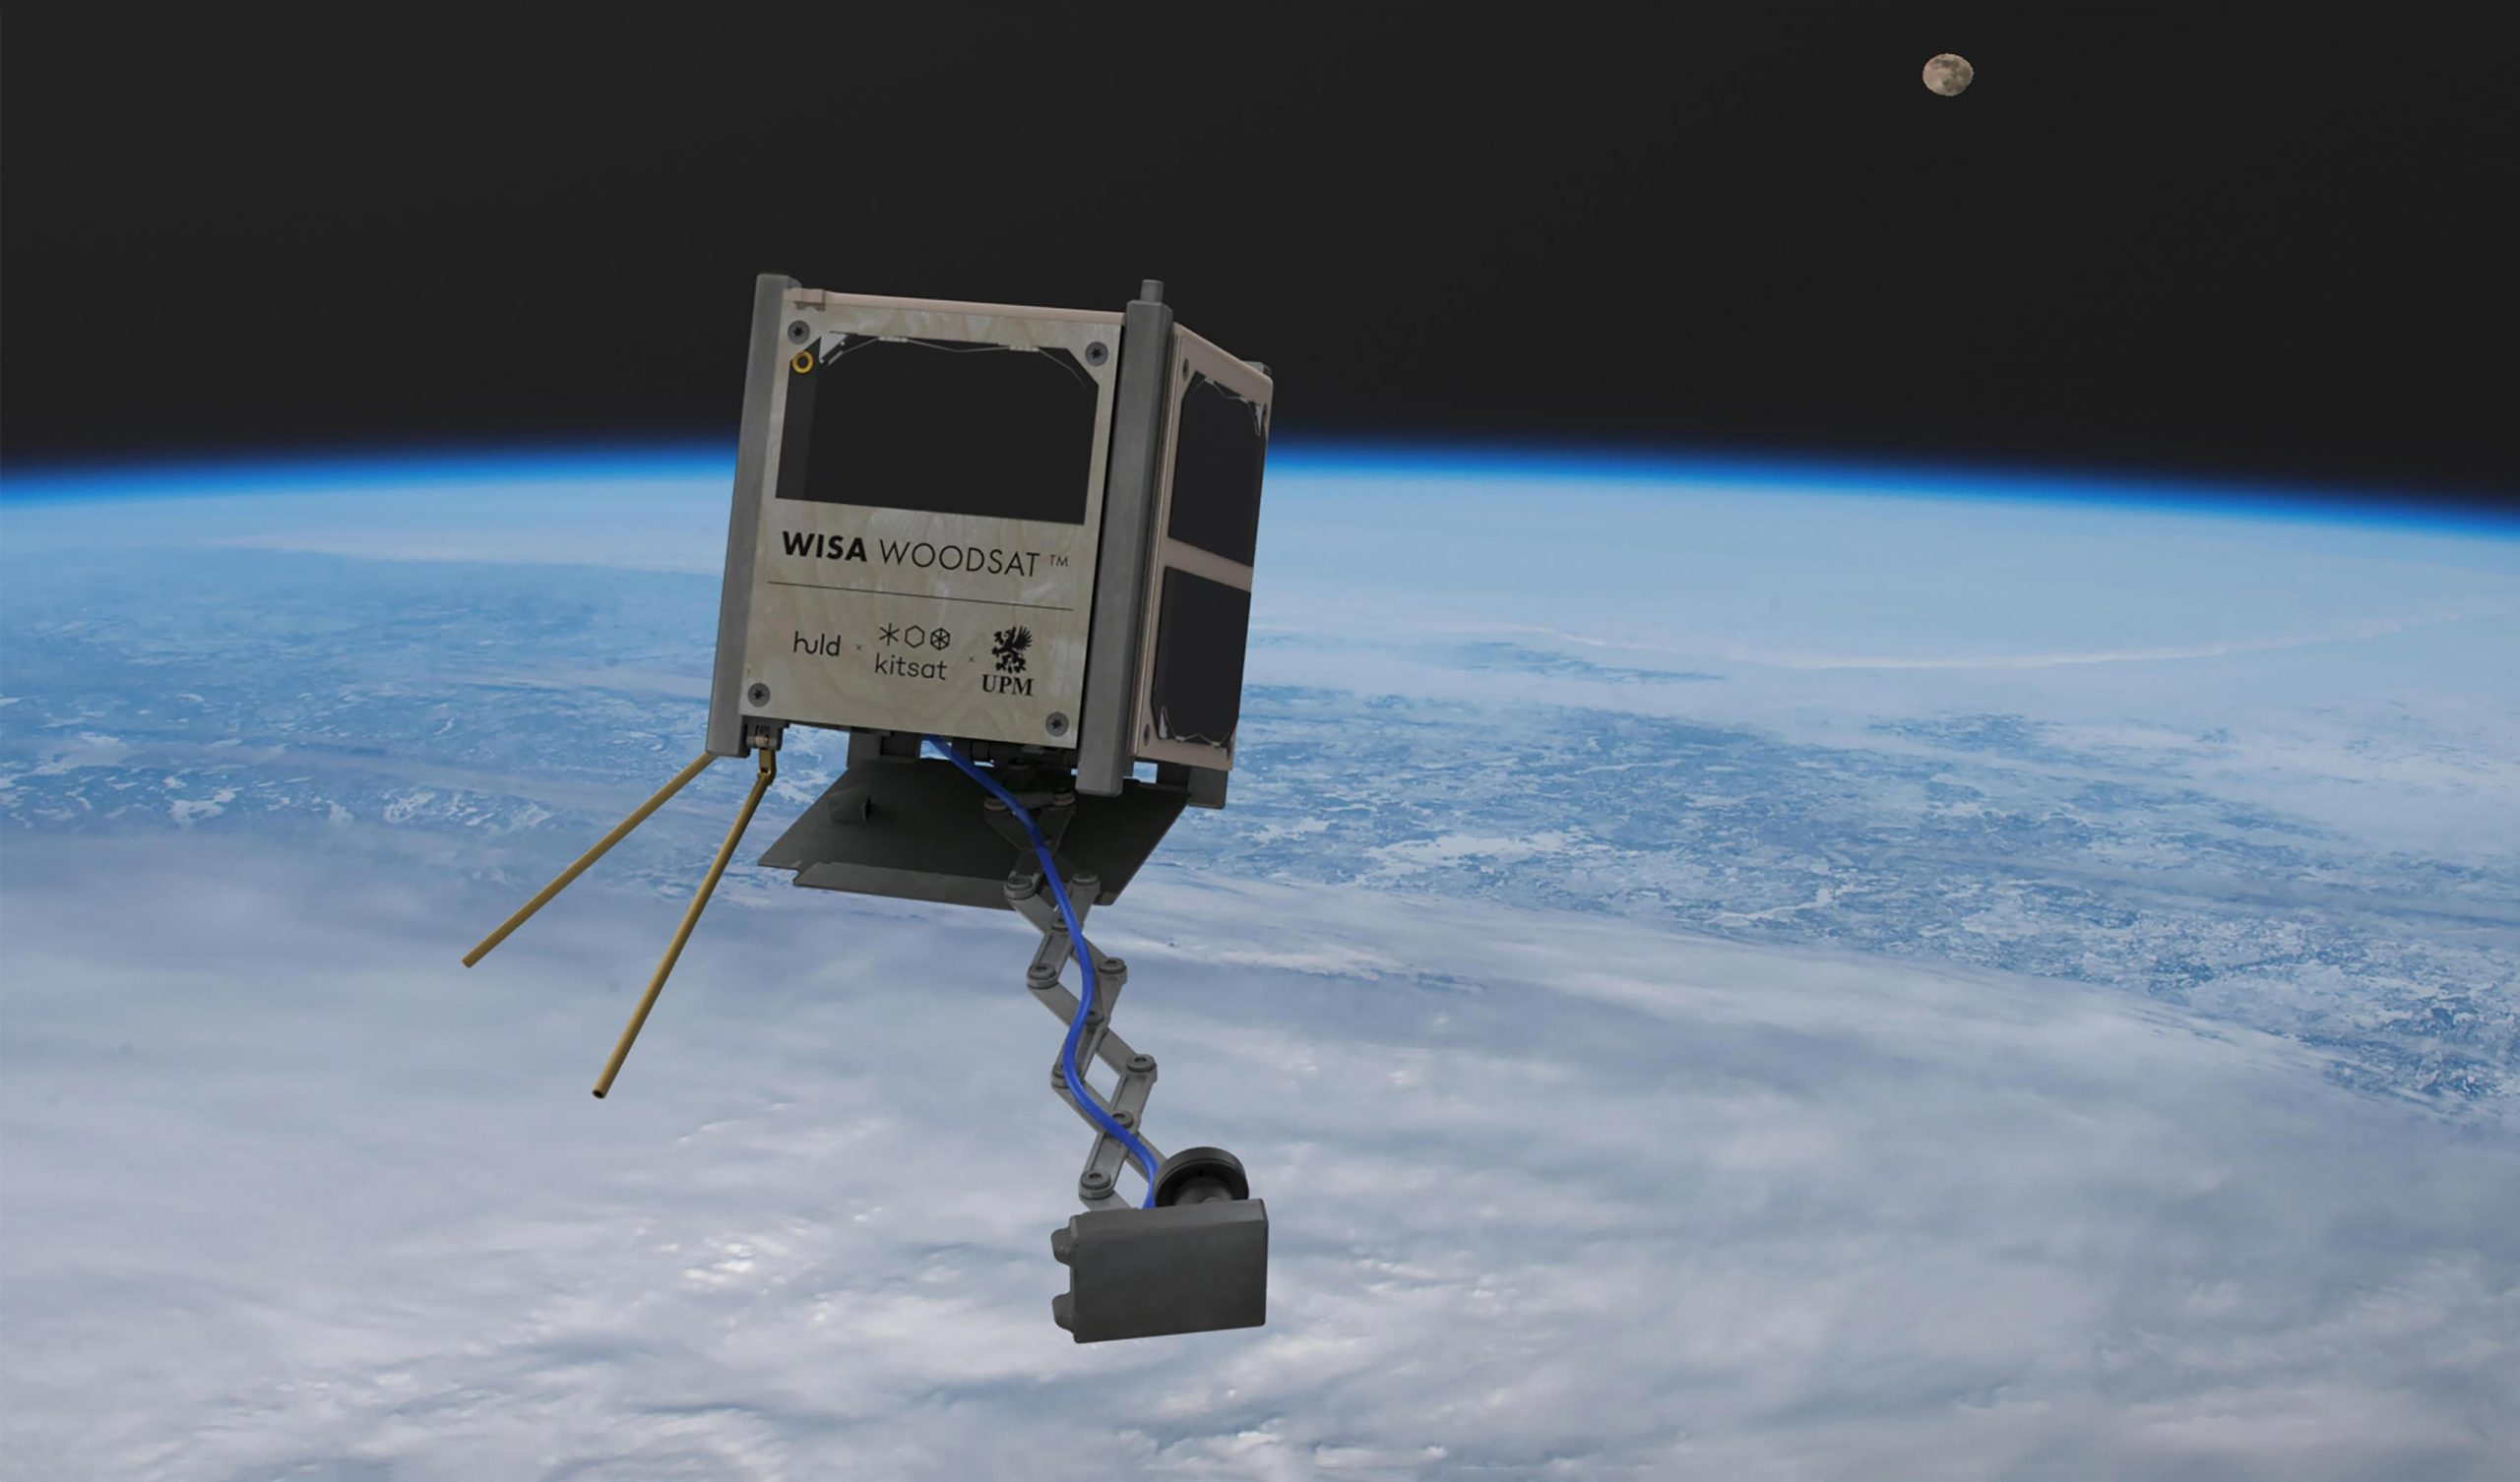 World's First Wooden Satellite Set To Launch – Can Plywood Survive in Space?